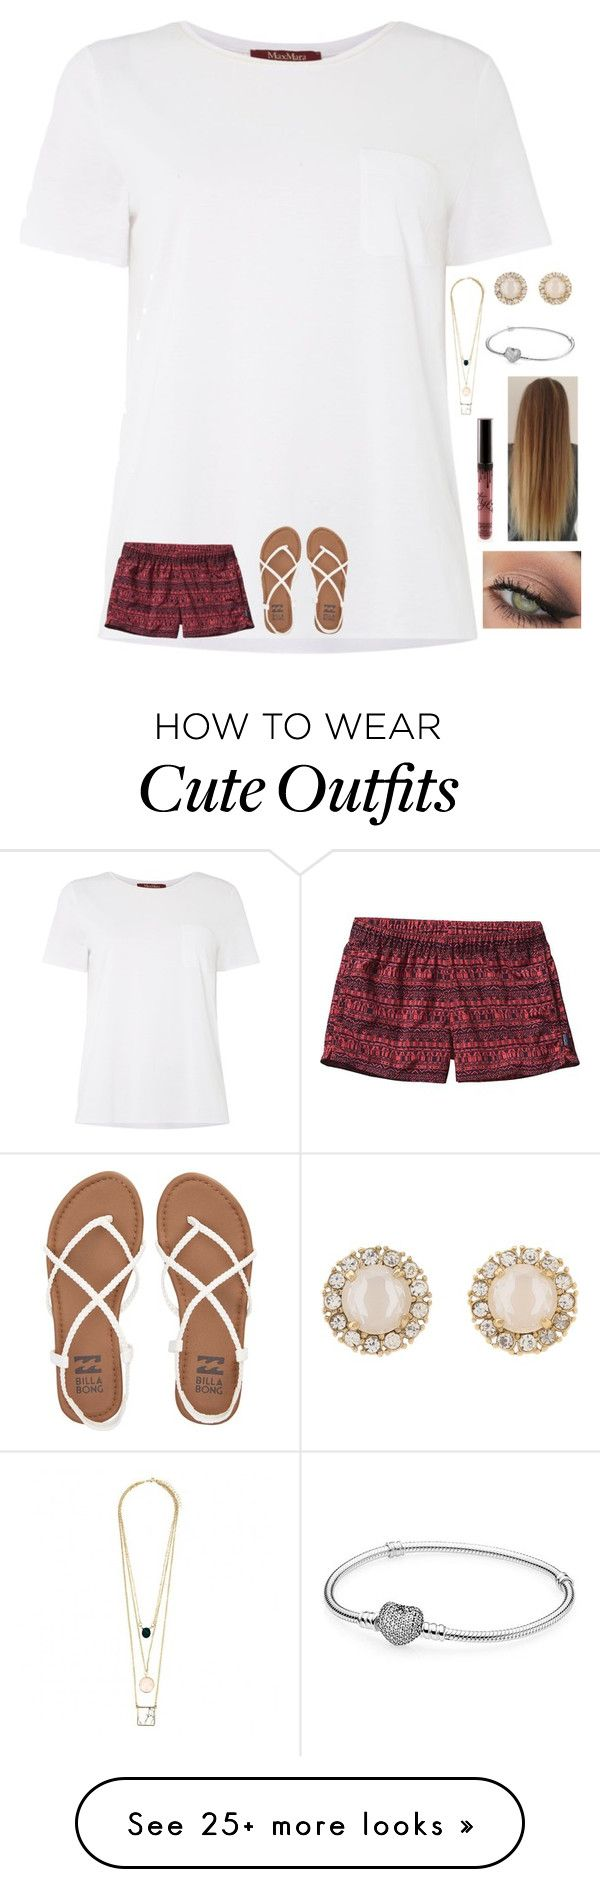 """Cute summer outfit"" by agrava on Polyvore featuring MaxMara, Patagonia, Billabong, Kate Spade, Pandora and tarte"